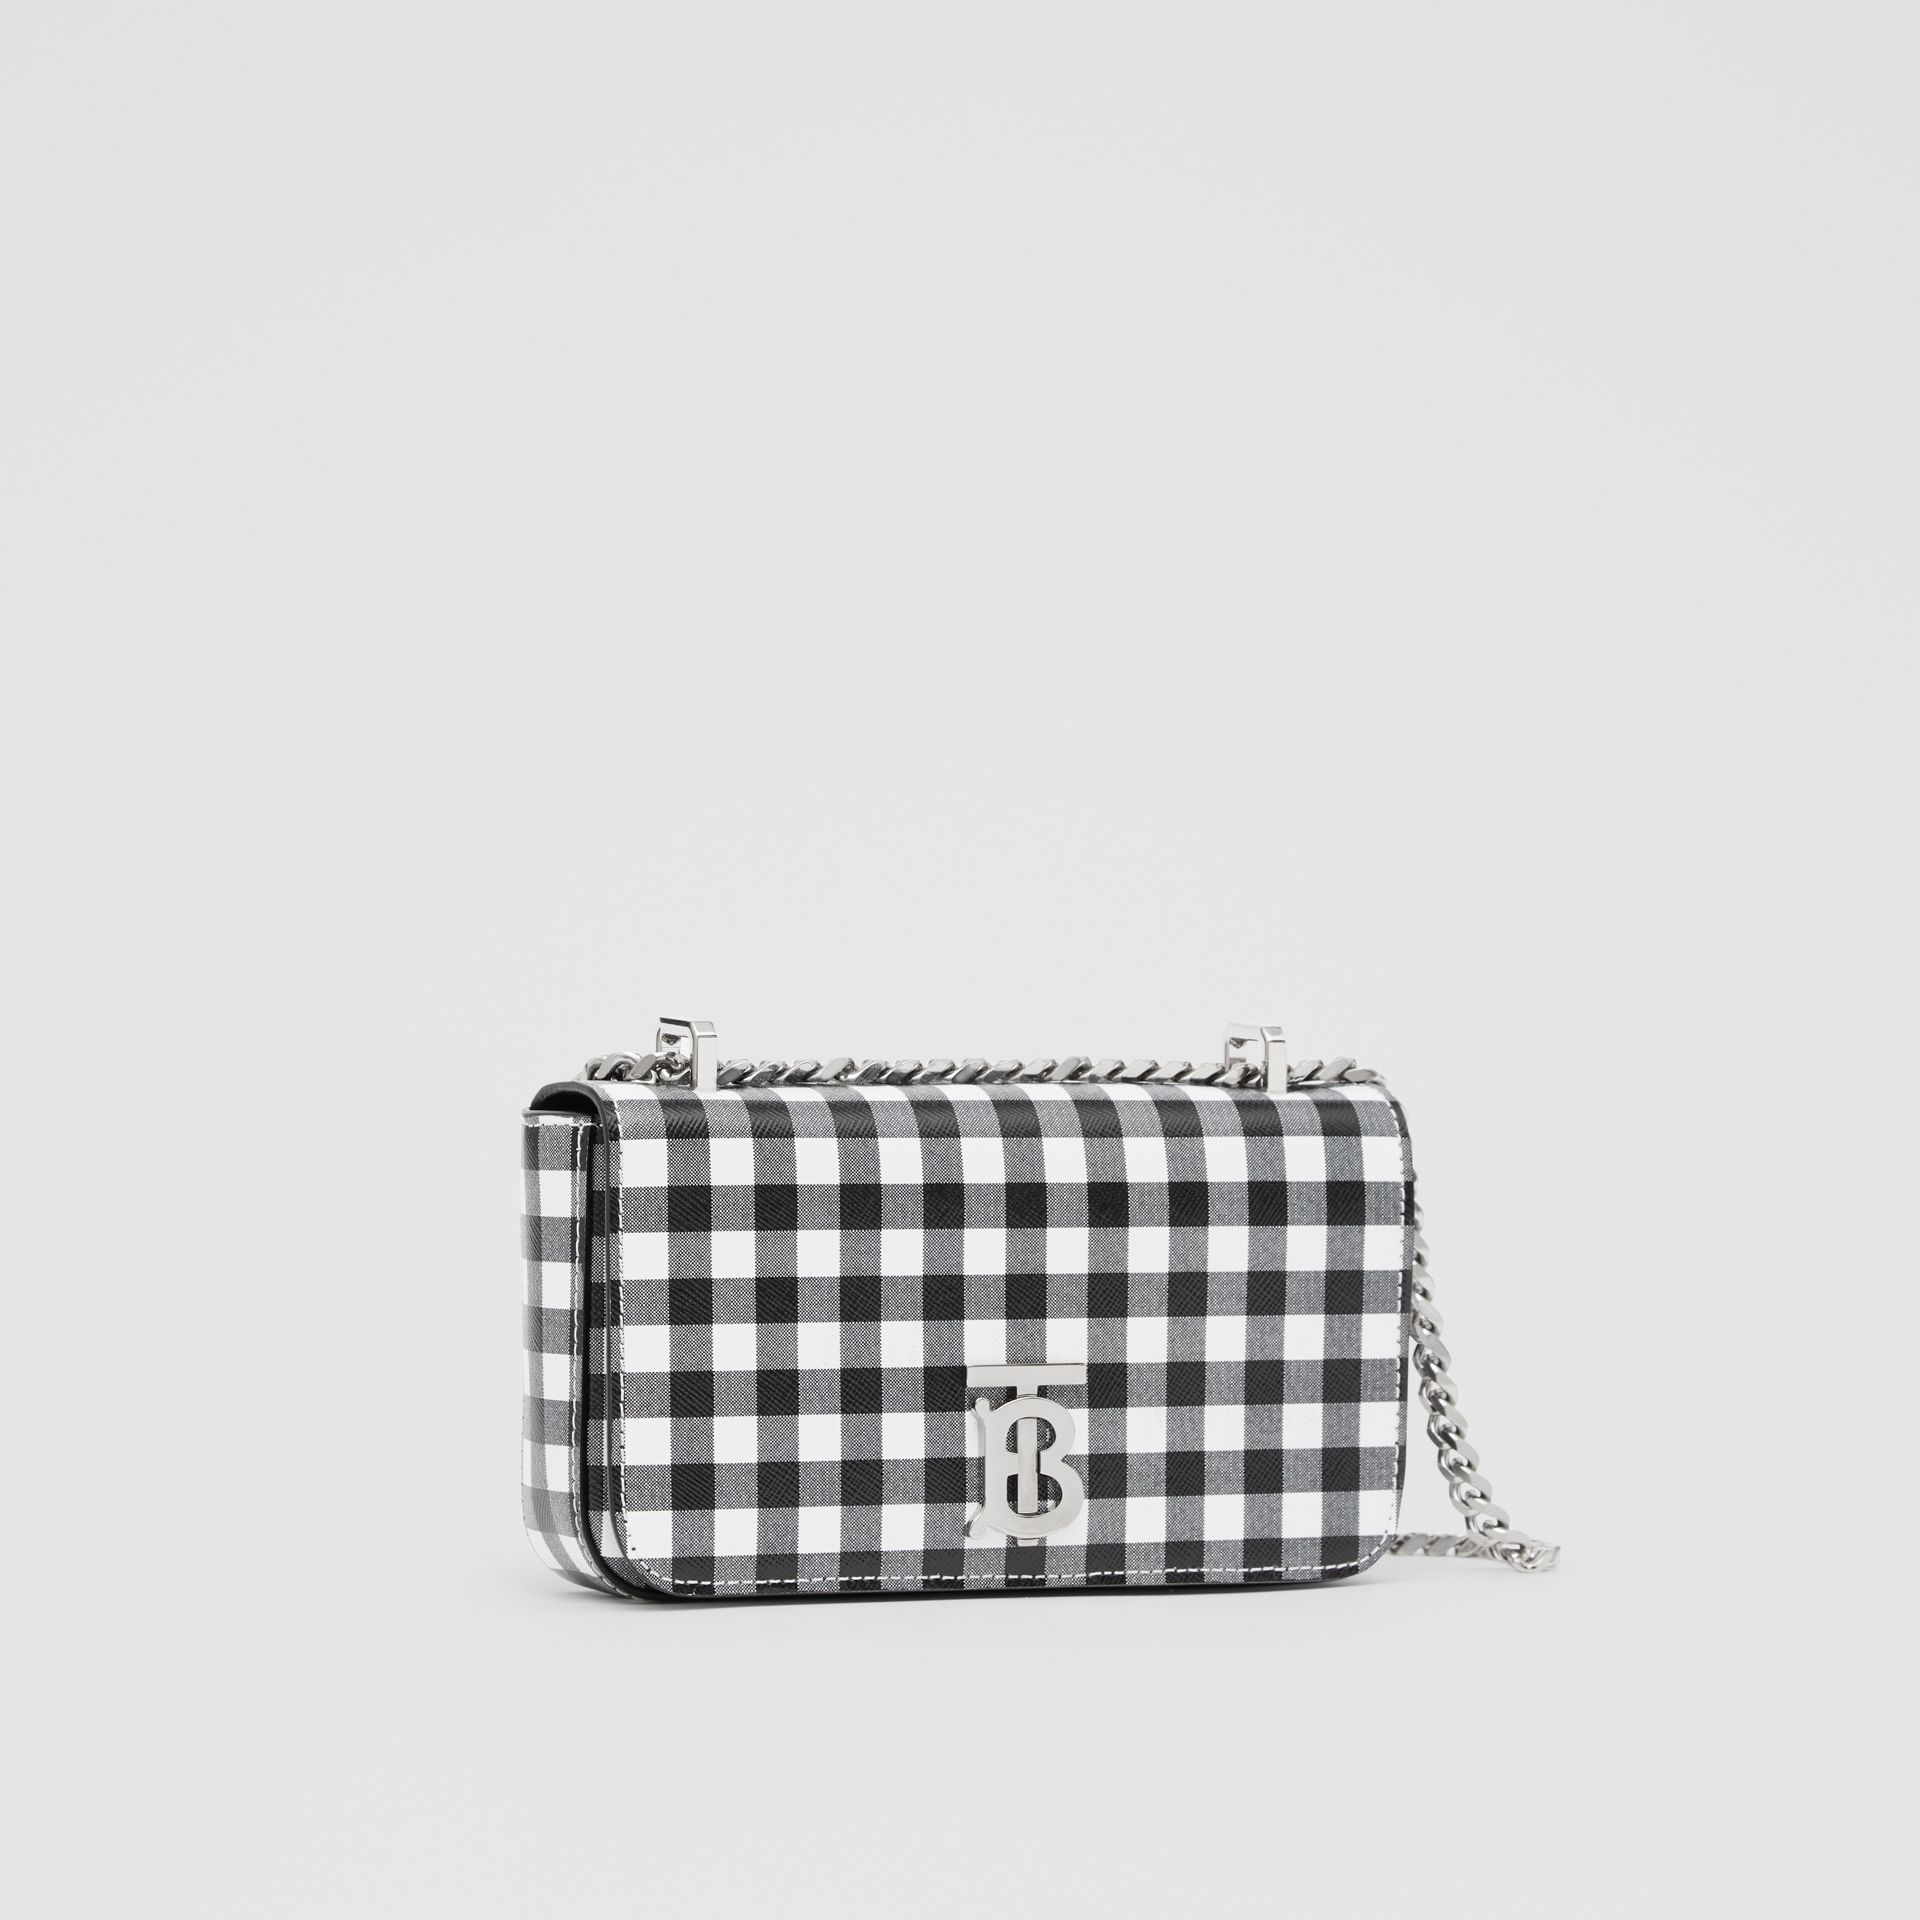 Mini Gingham Leather Lola Bag in Black/white - Women | Burberry - gallery image 6